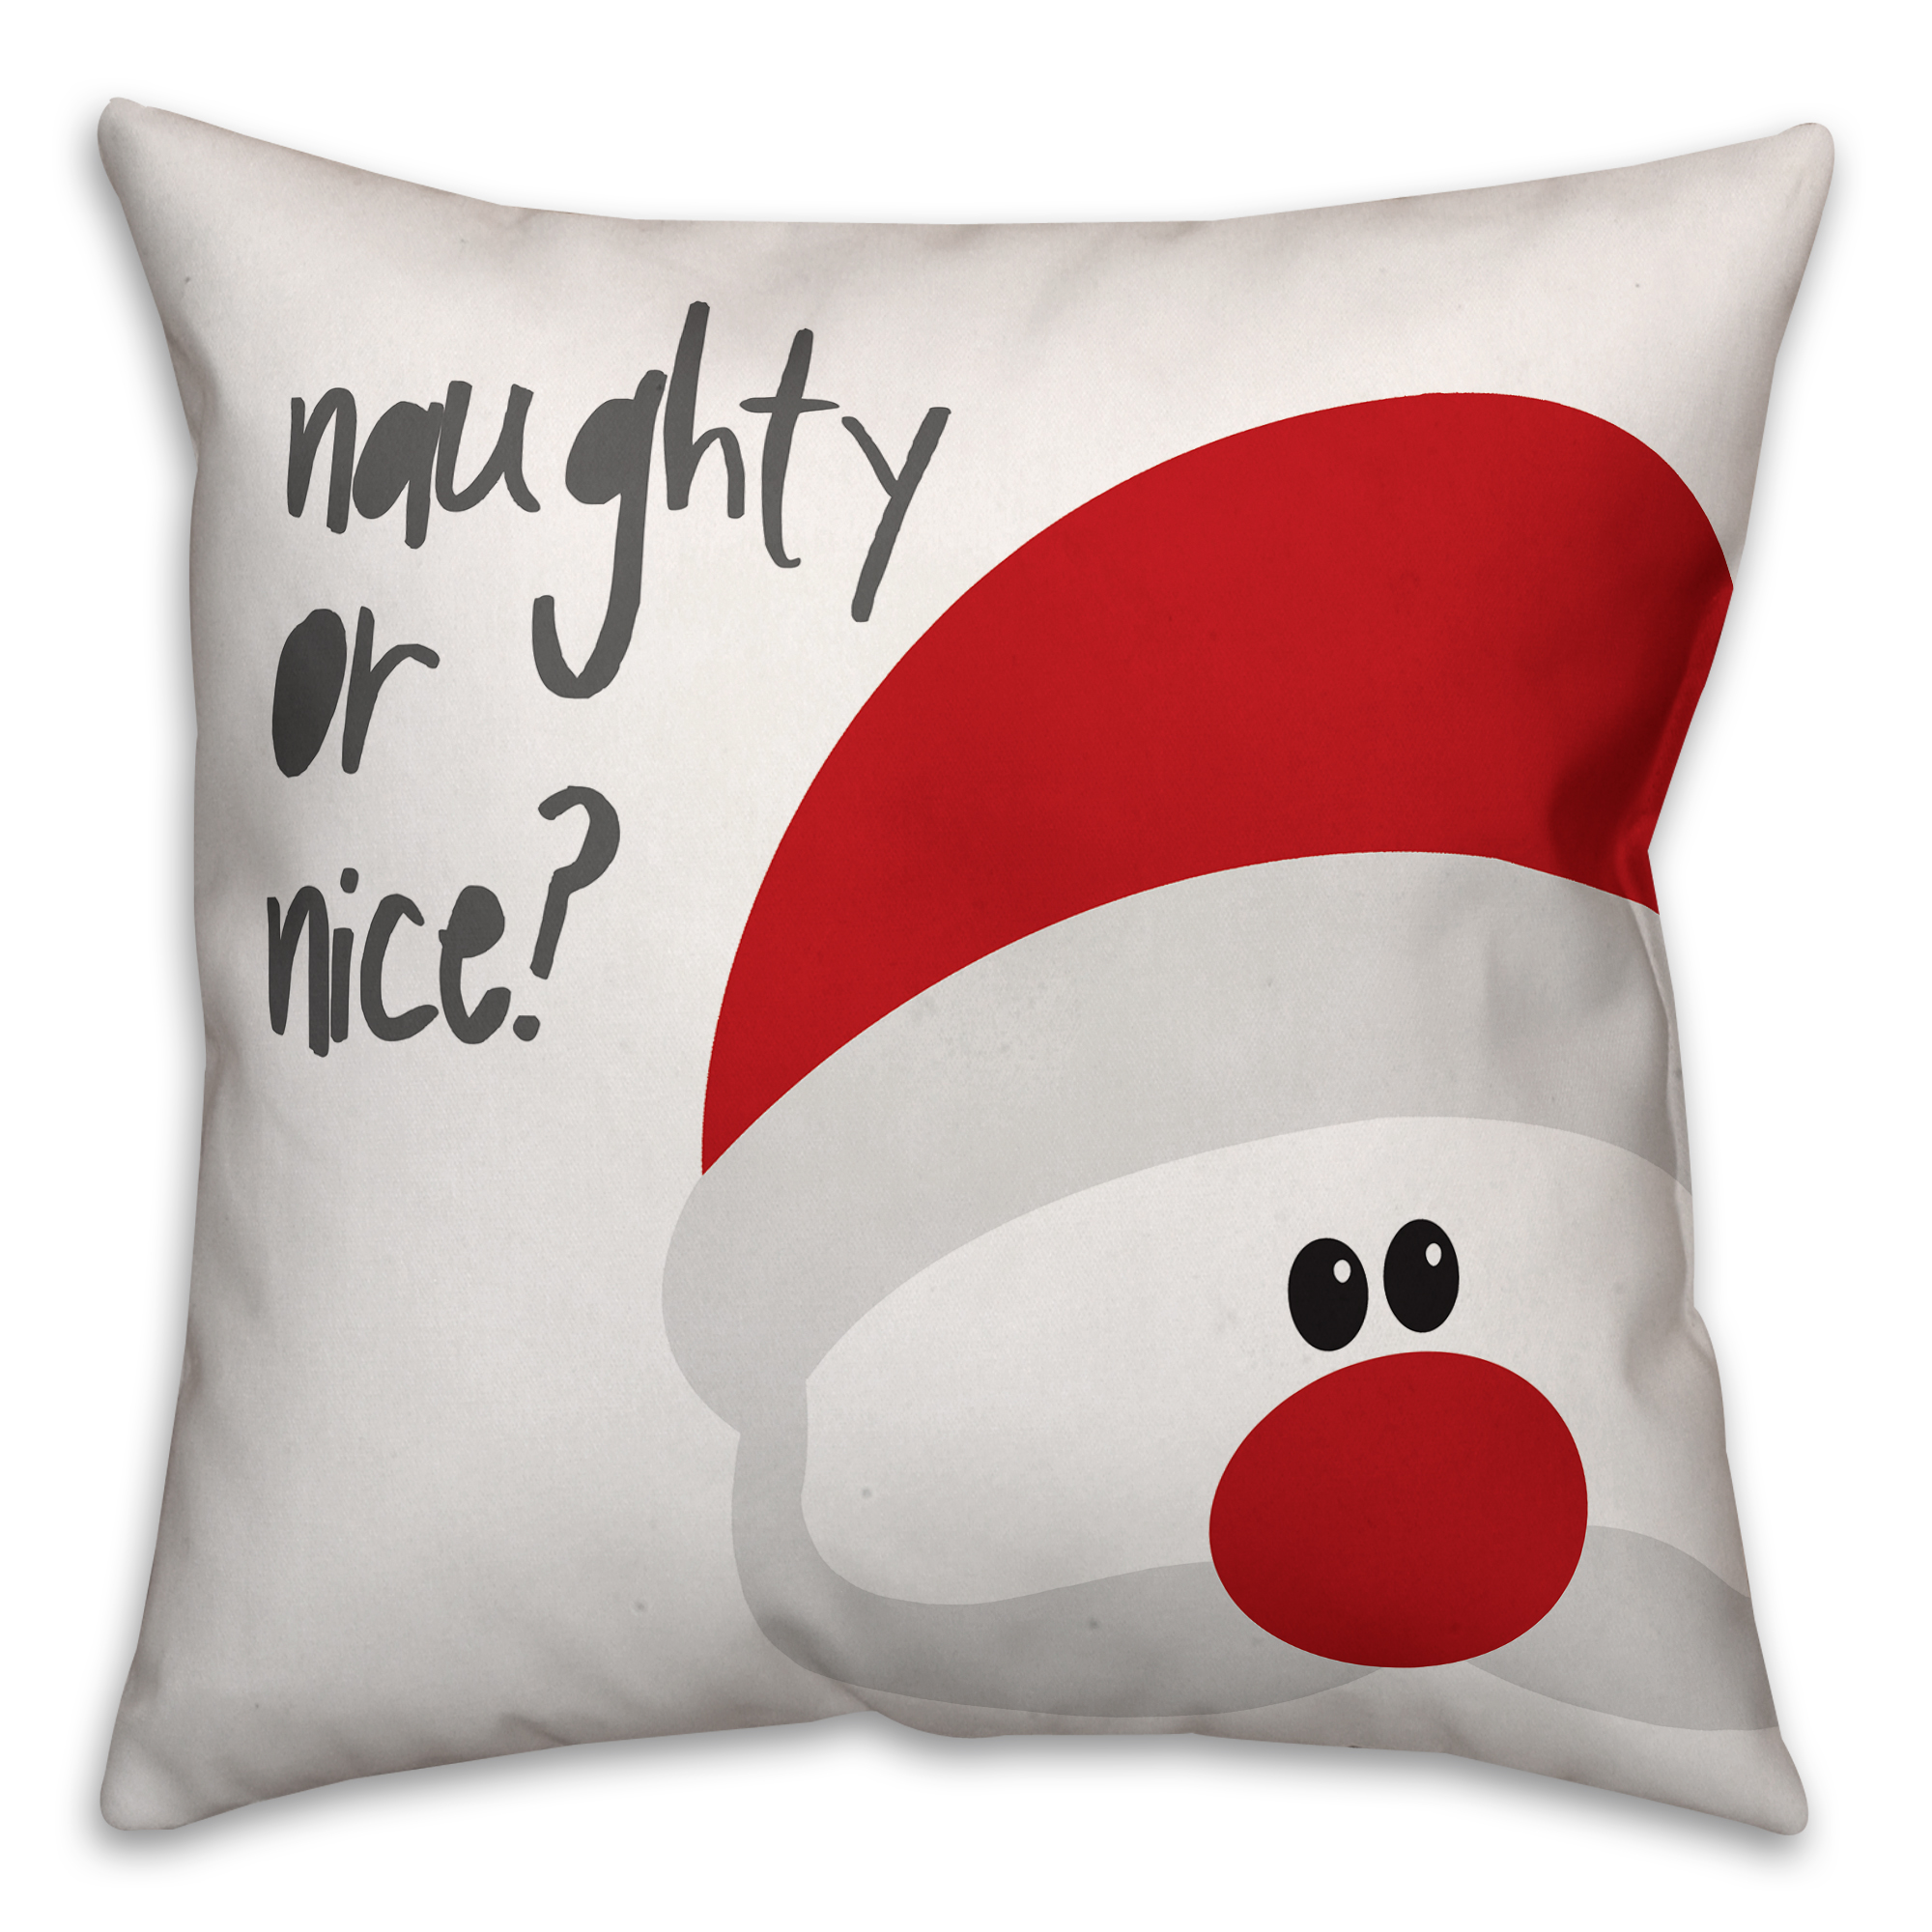 Santa Naughty or Nice 16x16 Spun Poly Pillow Cover